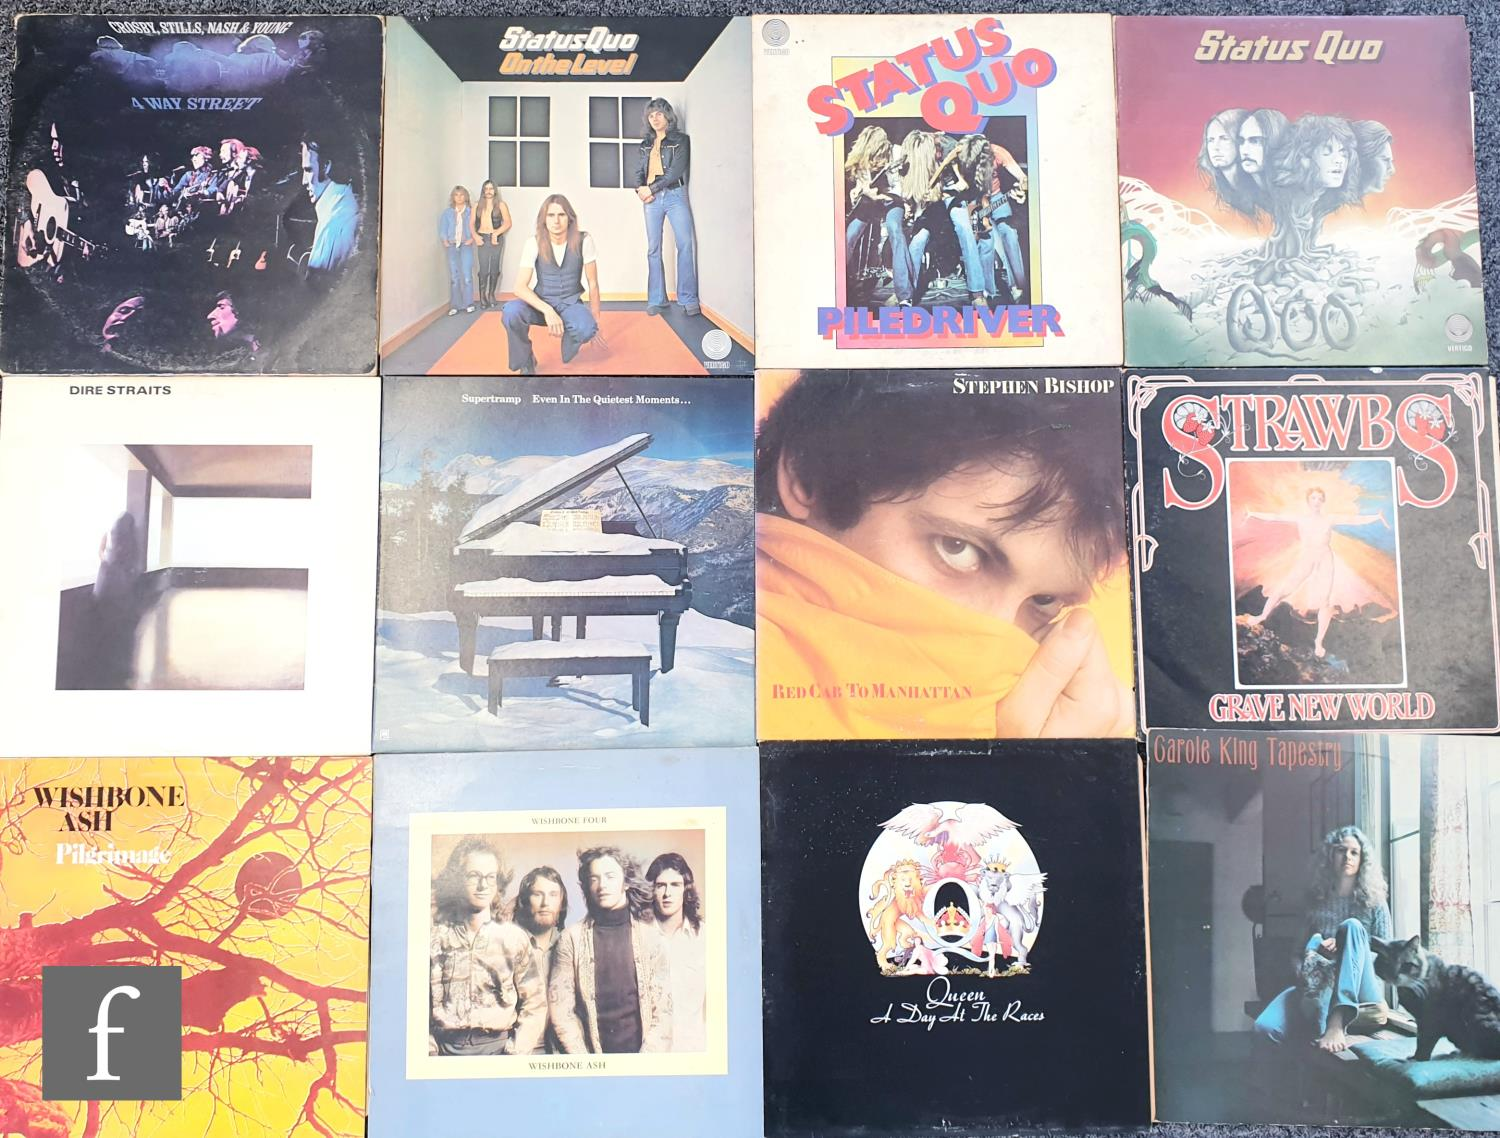 A collection of rock, pop and folk LPs, artists include Emerson, Lake and Palmer, Queen, The